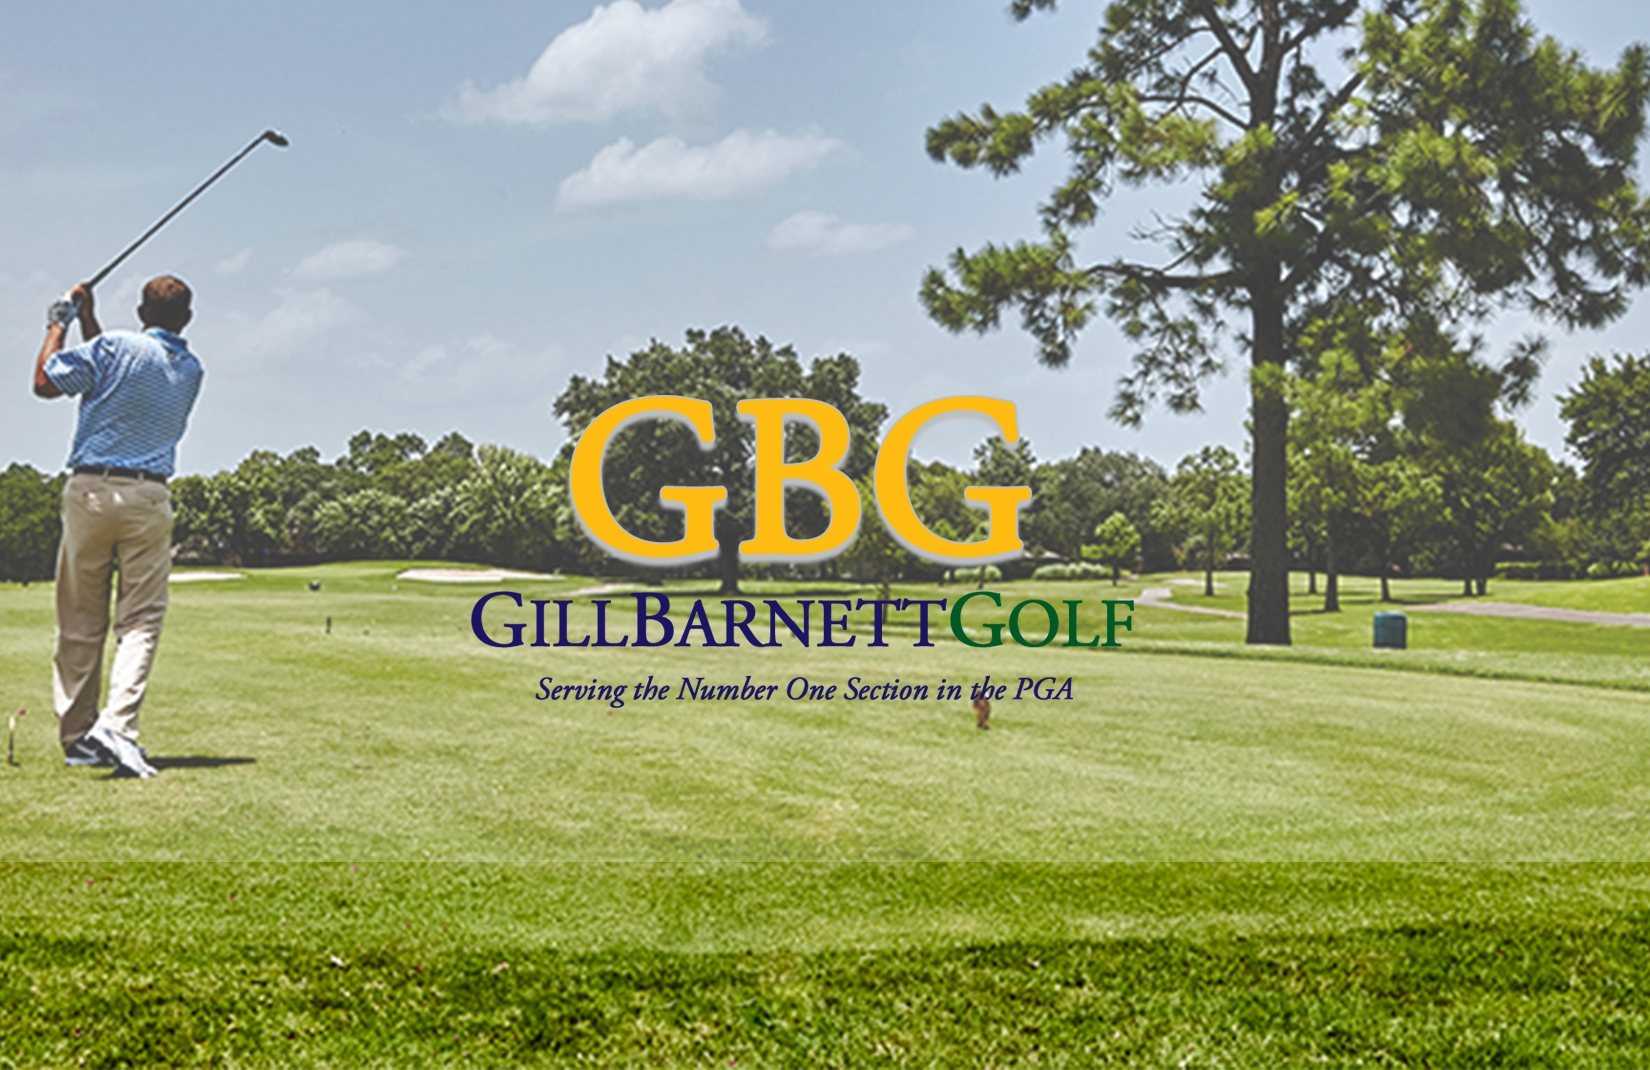 Gill Barnett Golf to Title the STPGA 9-9-9 Pro-Pro in June